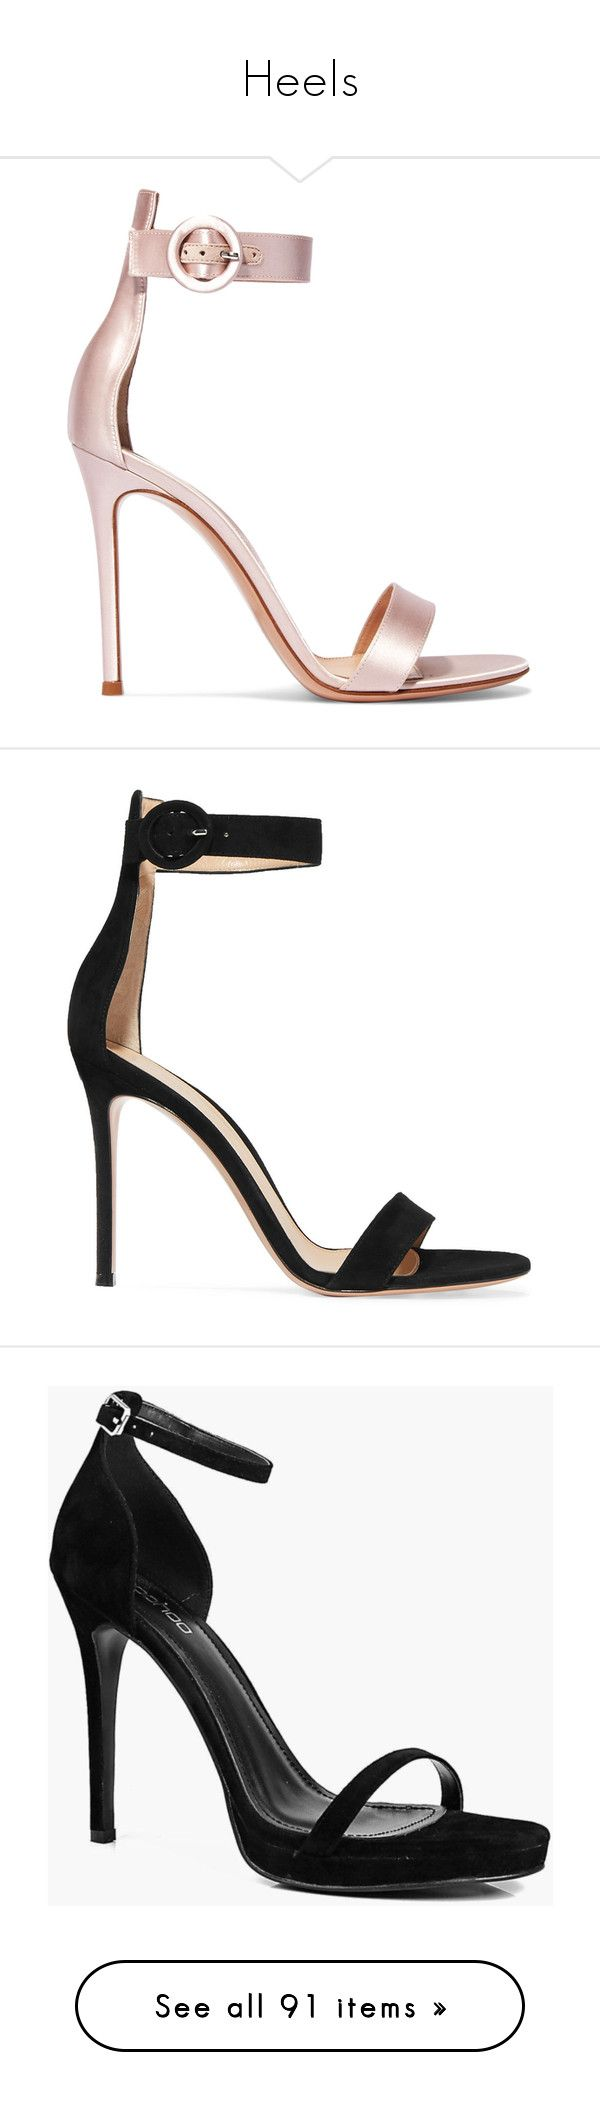 """Heels"" by zivapersonalshopping on Polyvore featuring shoes, sandals, heels, sapatos, heeled sandals, strappy high heel sandals, strap heel sandals, buckle sandals, bridal sandals and gianvito rossi"